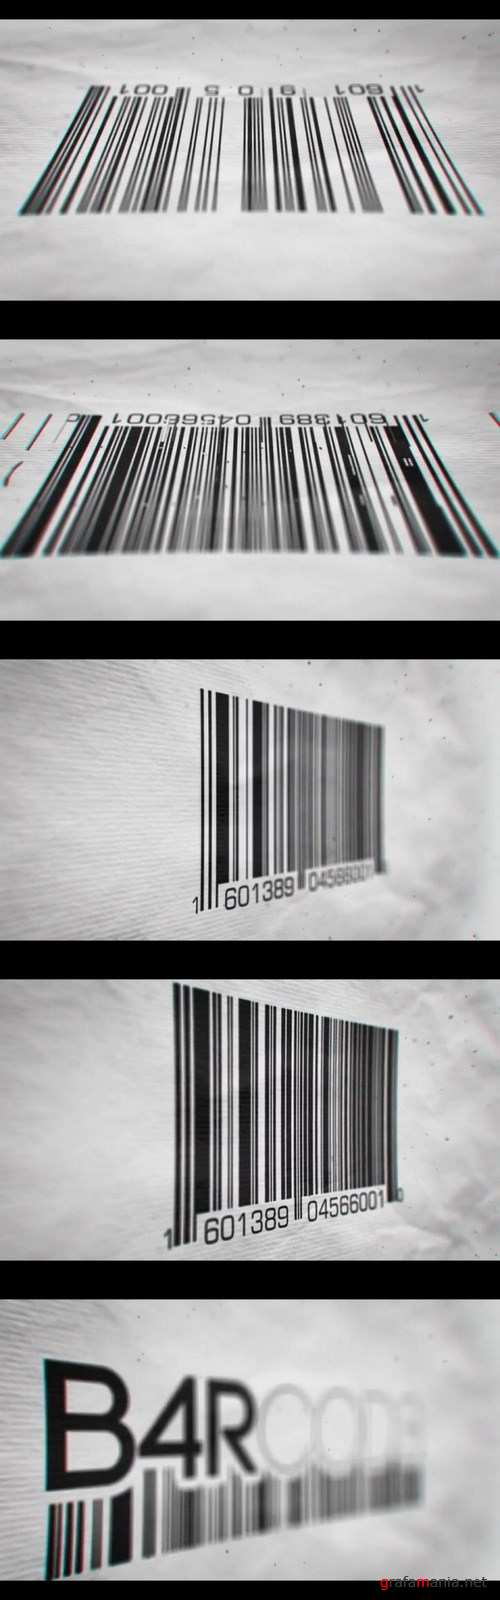 Videohive Barcode Reveal 19486196